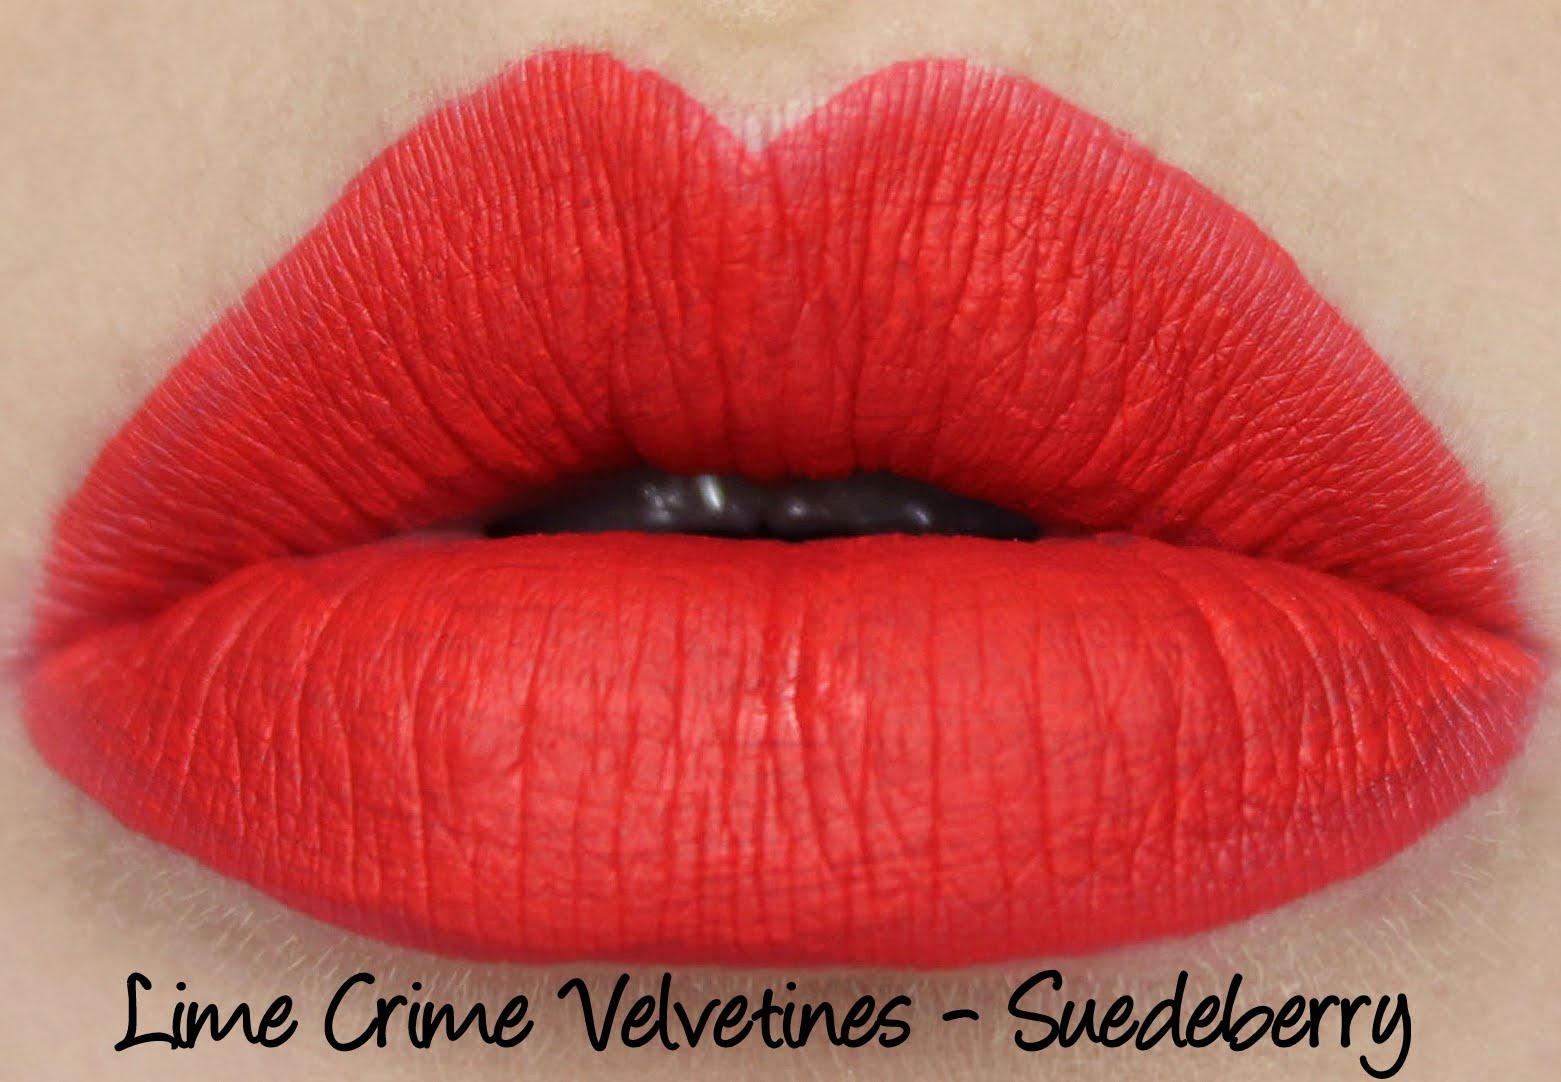 Lime Crime Velvetines Suedeberry lipstick swatch